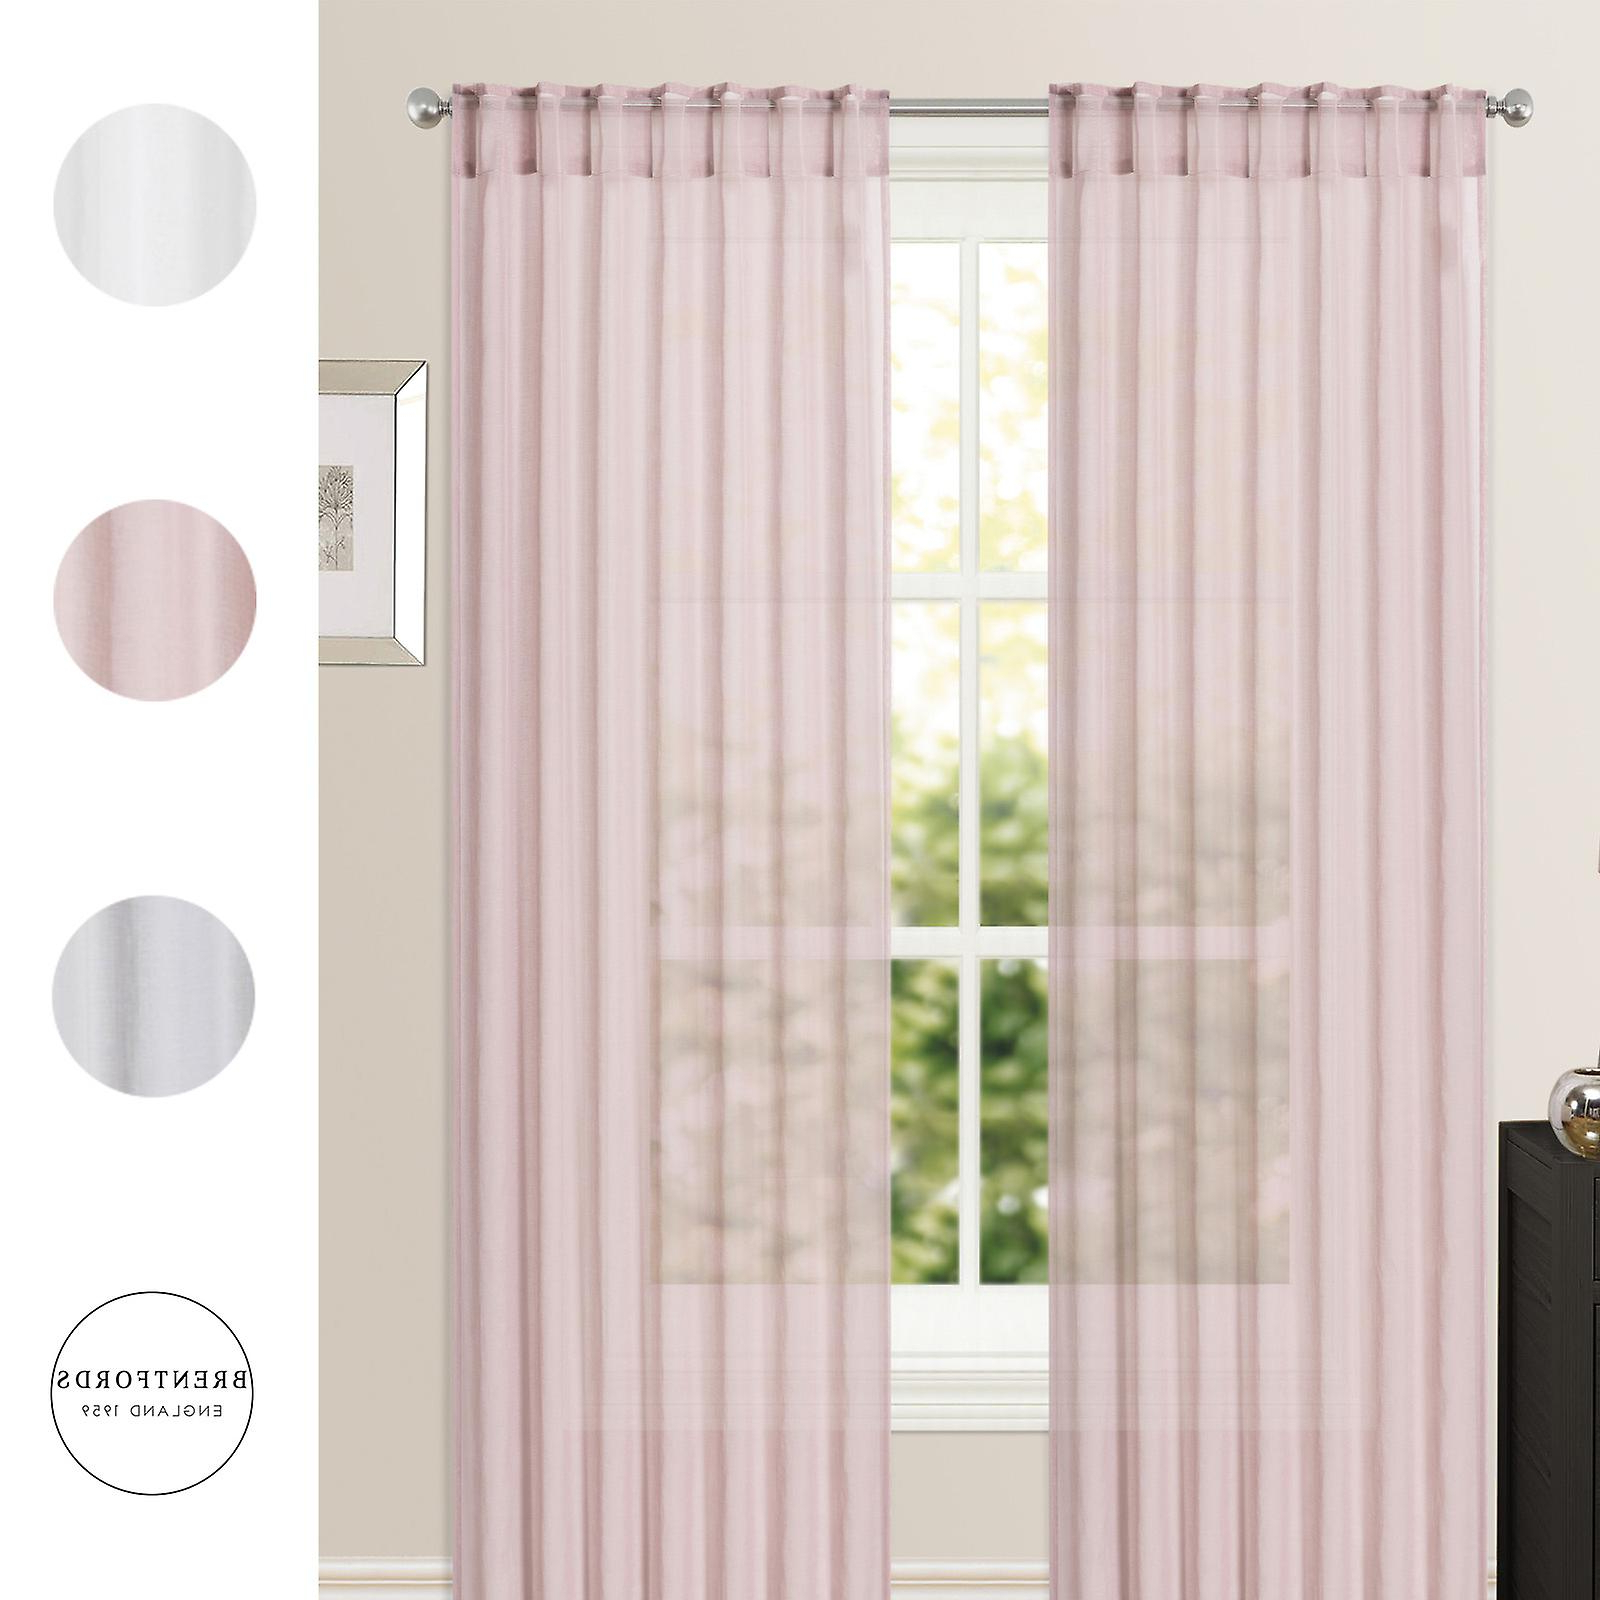 Pairs To Go Victoria Voile Curtain Panel Pairs With Regard To Best And Newest Brentfords Pair Of Sheer Voile Net Curtains Hidden Tab Top Silver Blush Panels (View 17 of 20)